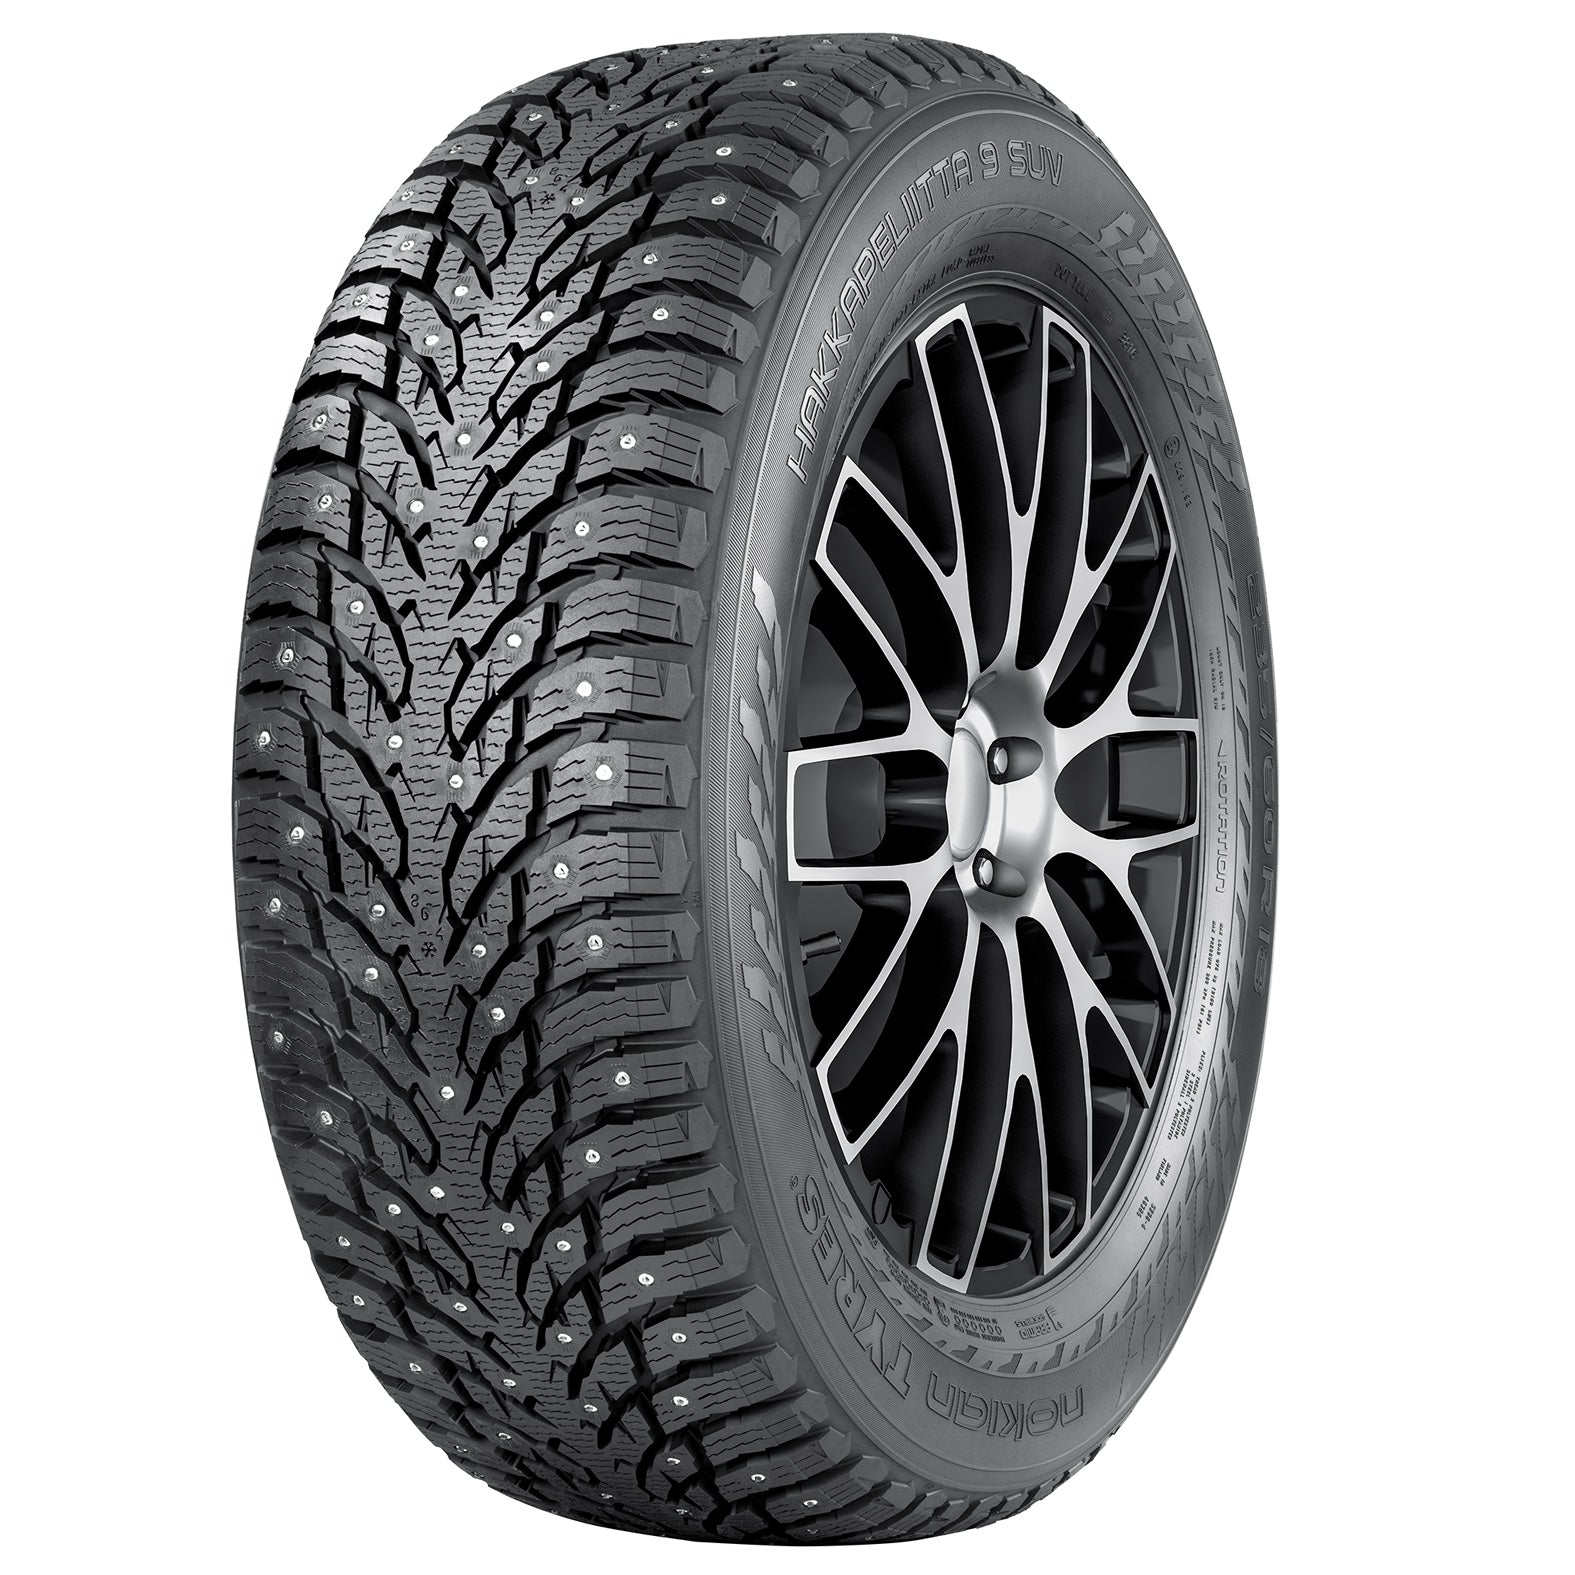 245/45R19 Nokian Hakkapeliitta 9 Studded Tires 102T XL for Tesla Model SNokianEV Tuning